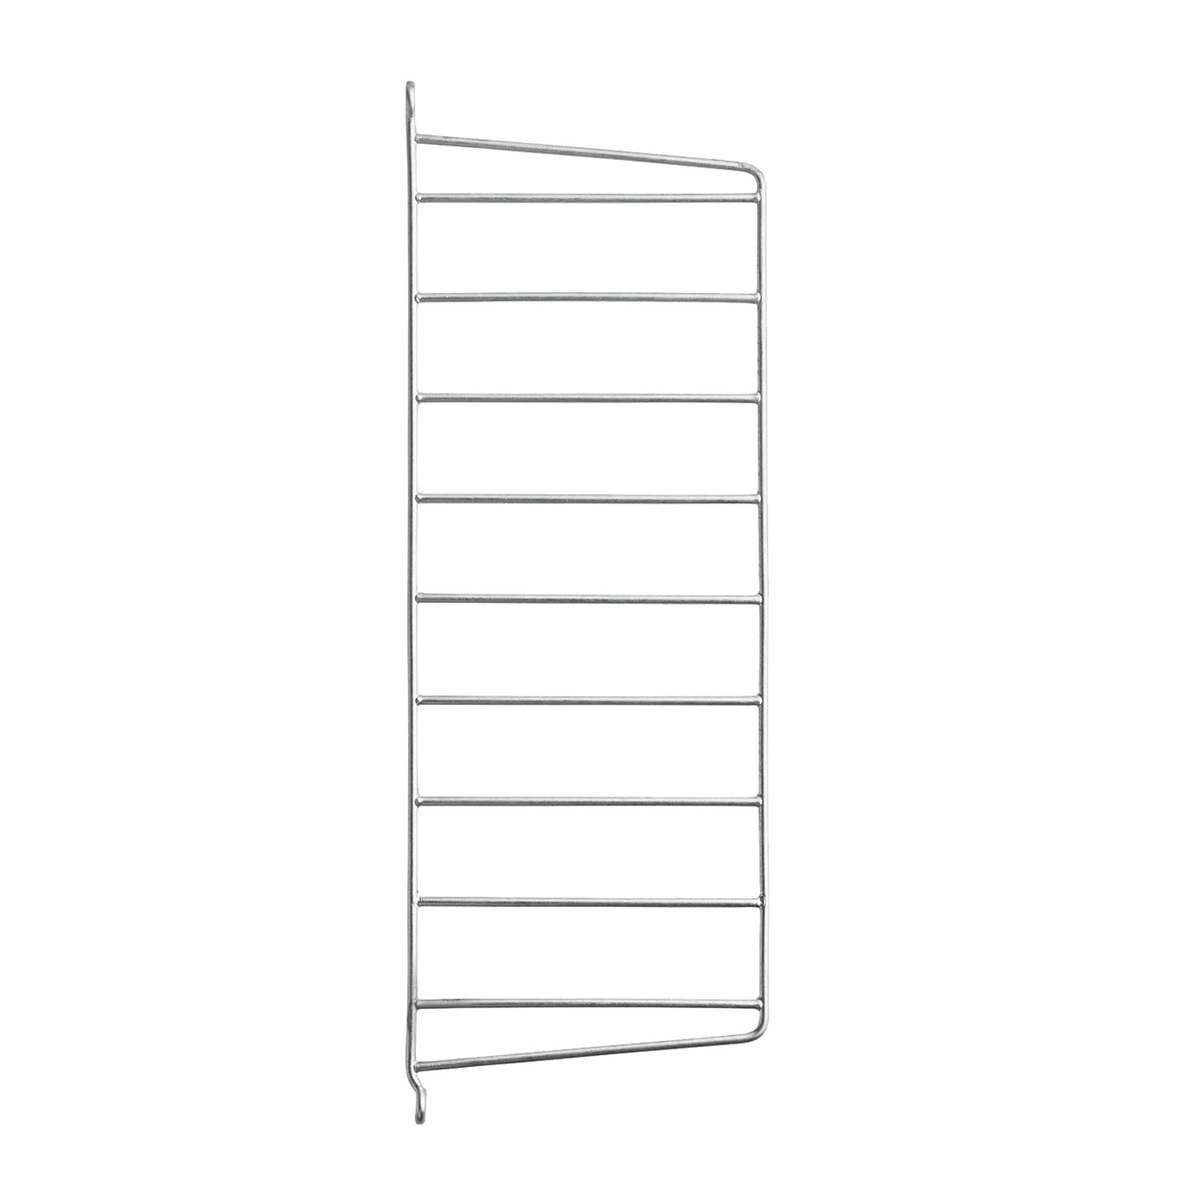 String Furniture String Outdoor side panel 50 x 20 cm, 2-pack, galvanized from String Furniture